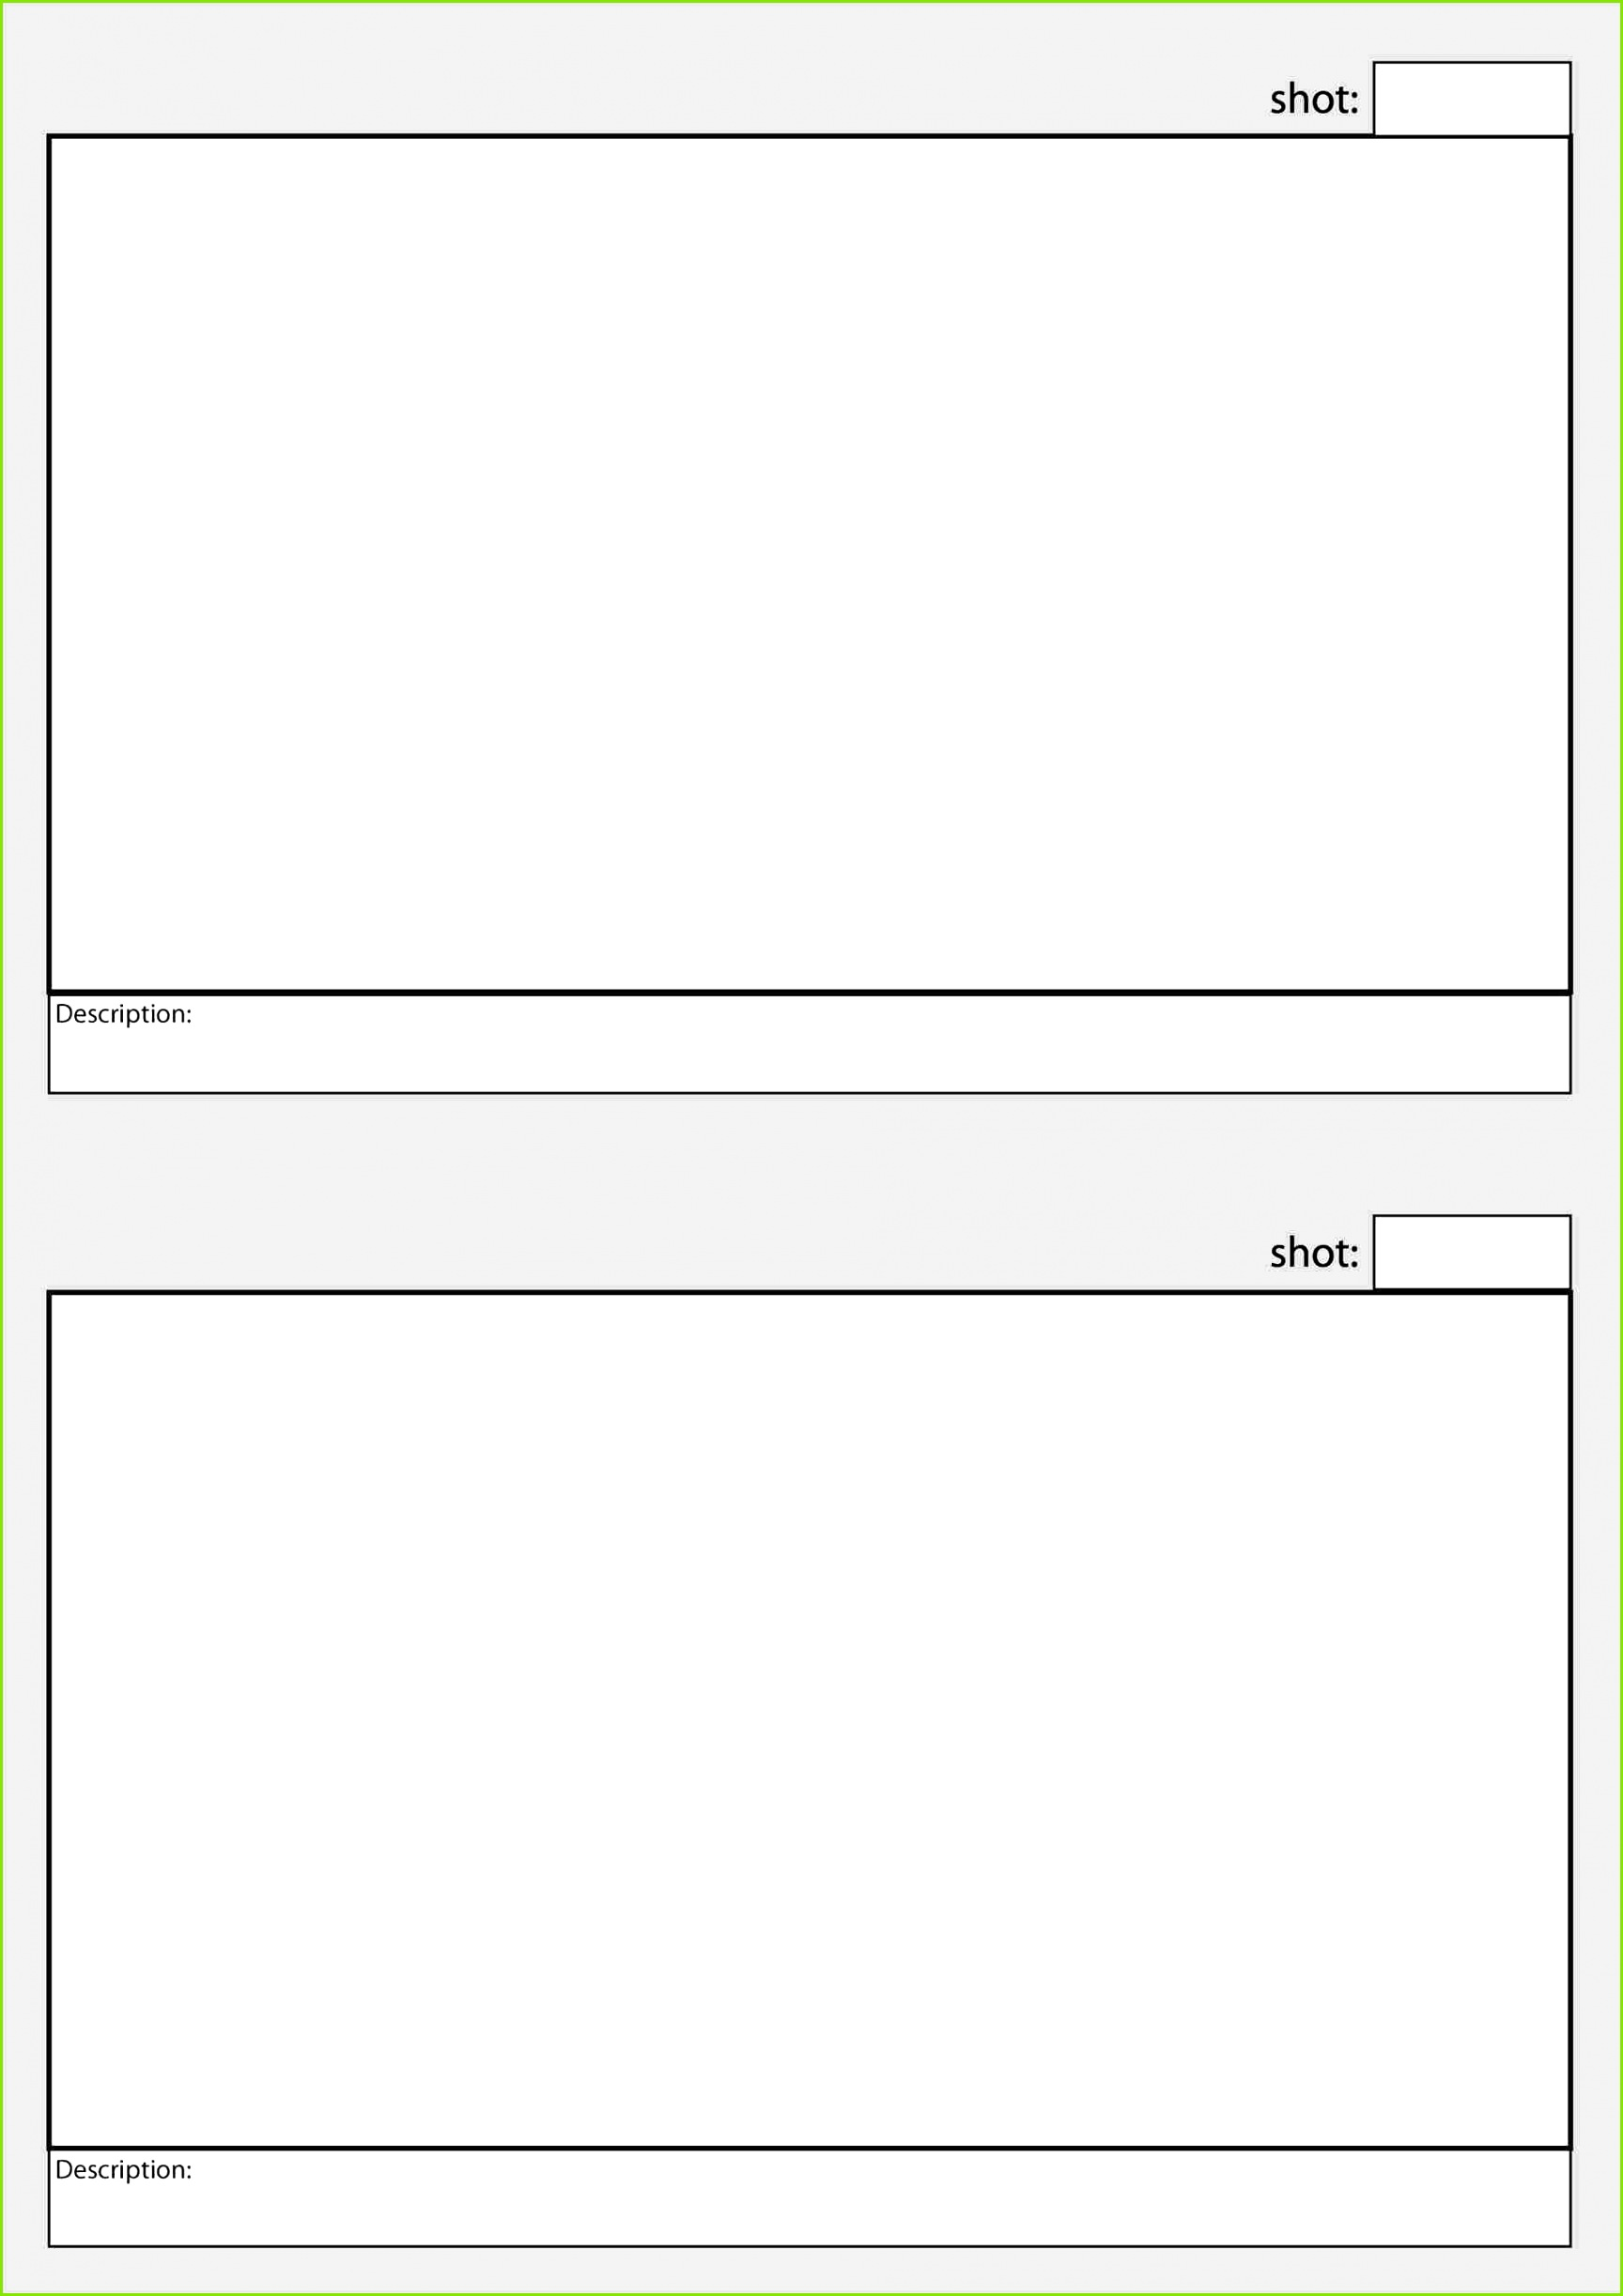 Gallery Storyboarding Template Elegant Storyboard Template Word New Charles Causley 0d 0a Search Results